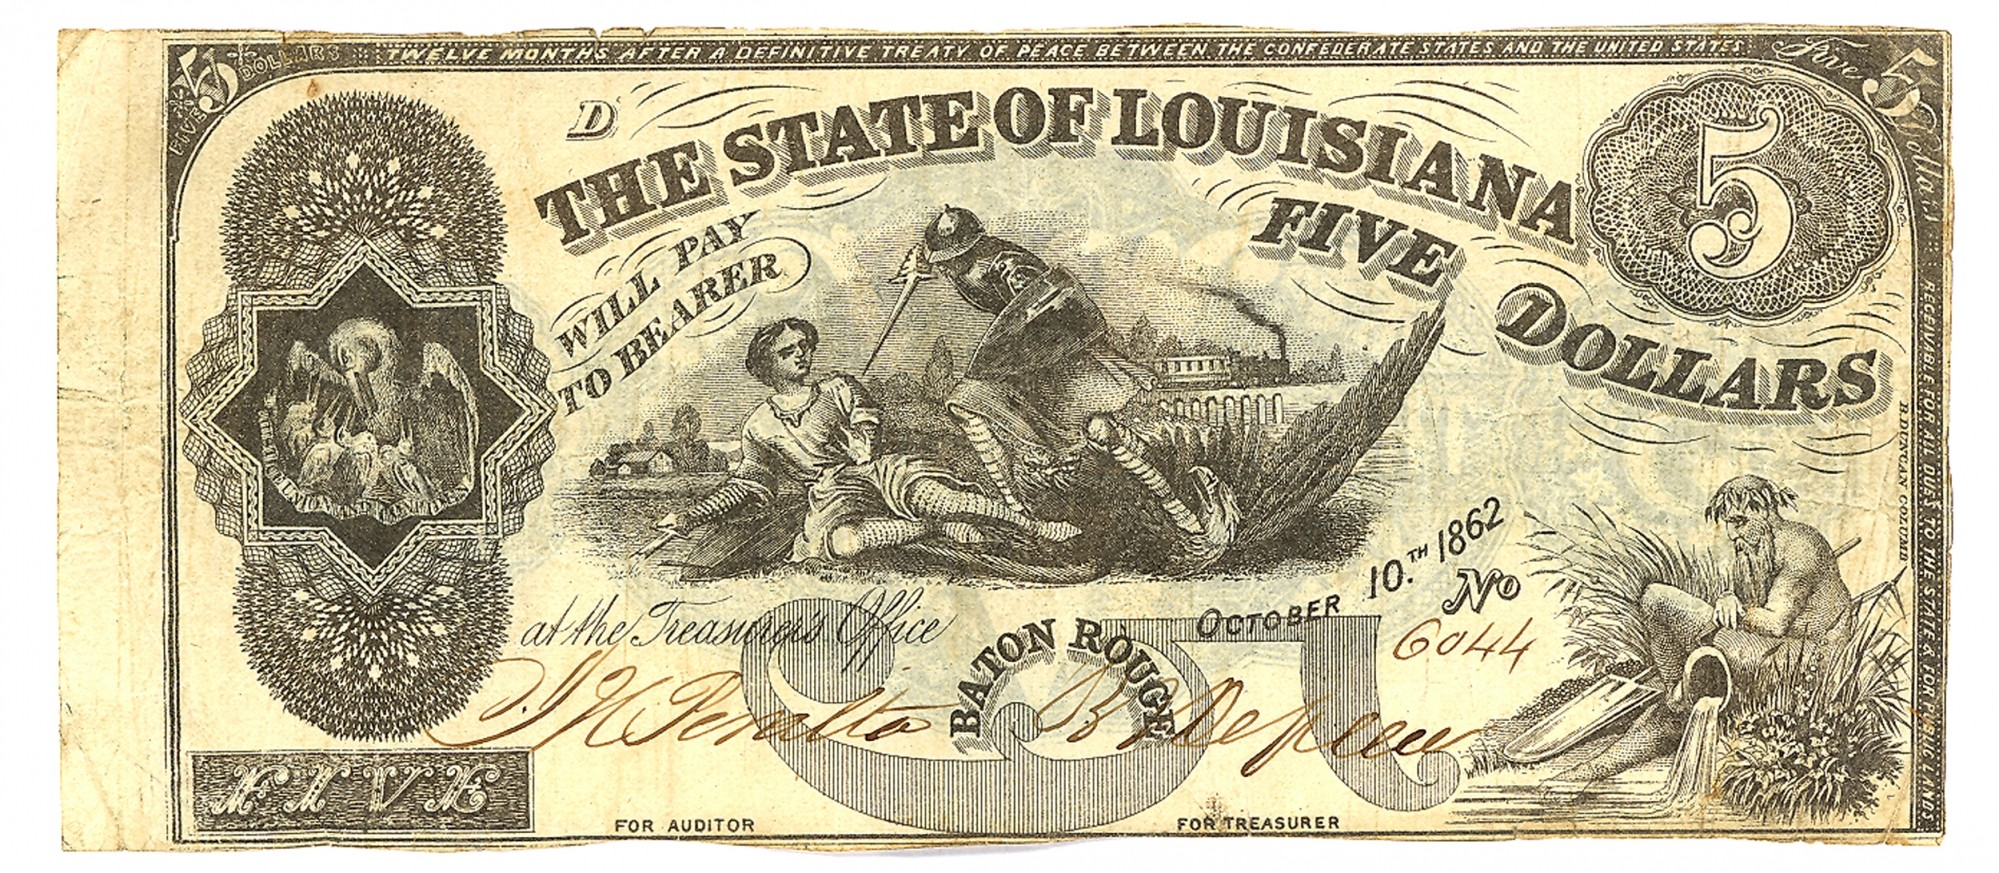 STATE OF LOUISIANA, BATON ROUGE, LOUSIANA, $5 NOTE